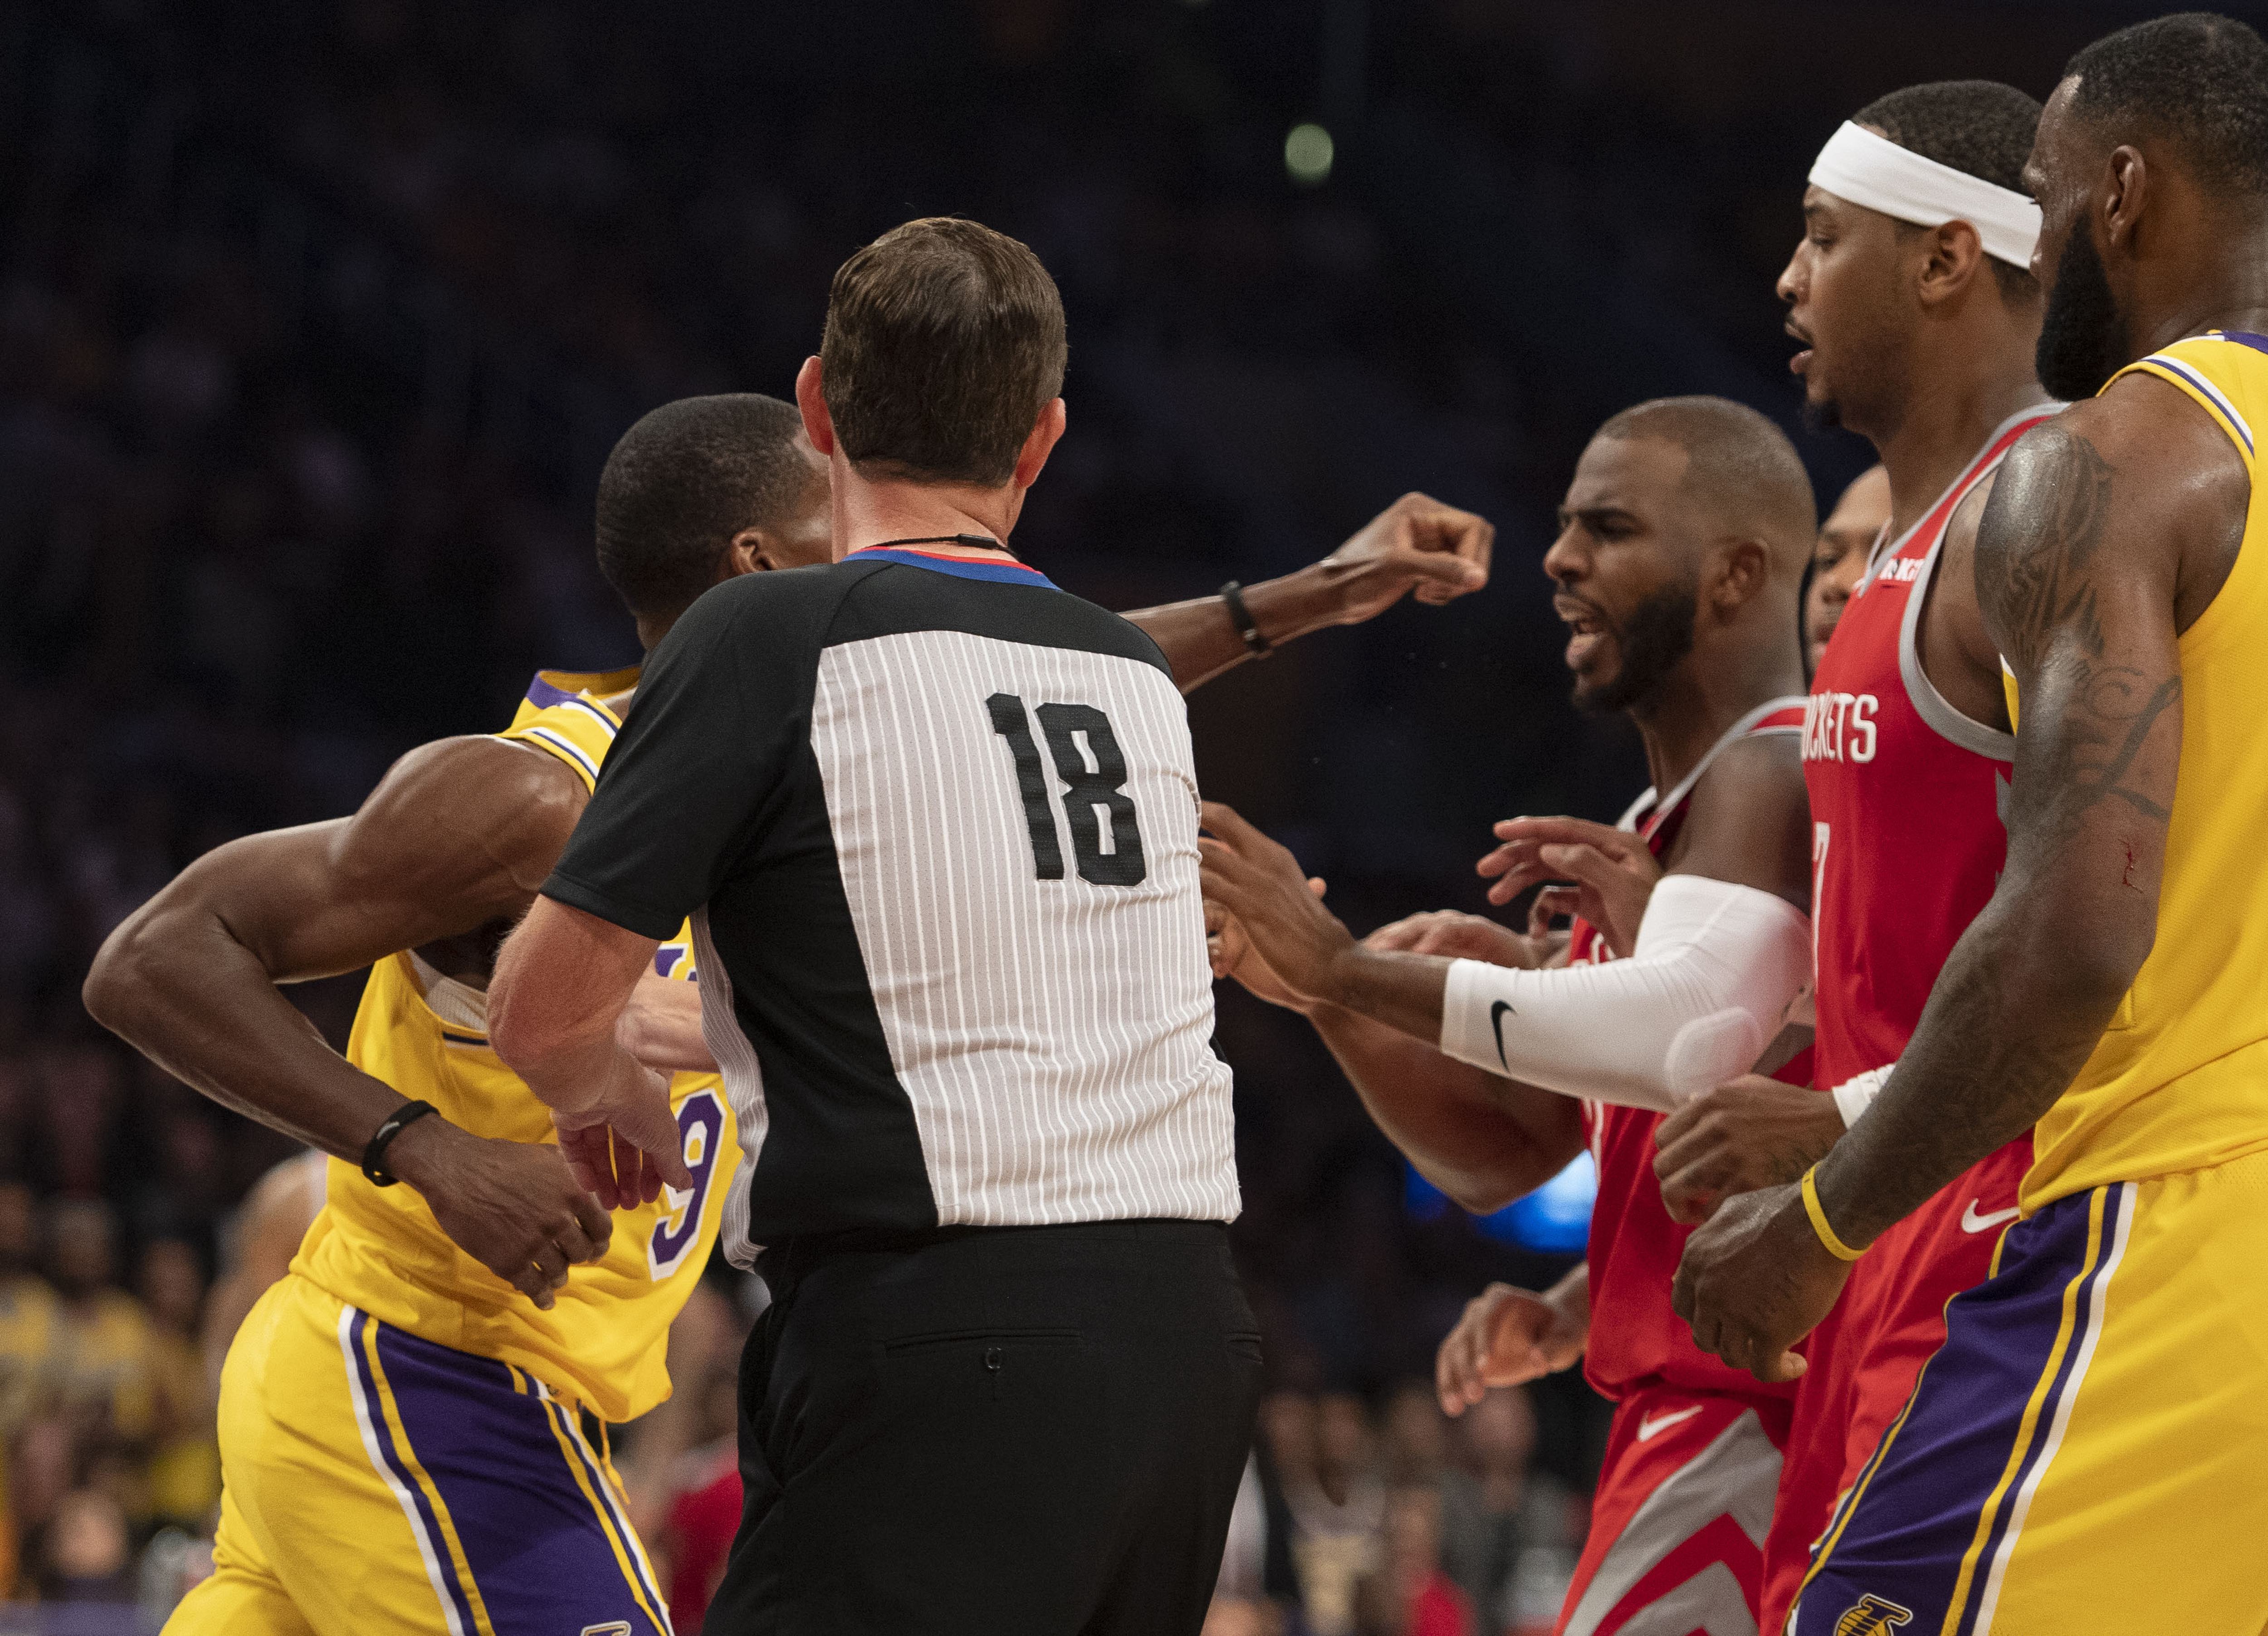 ded56d54c808 Rajon Rondo (left) of the Los Angeles Lakers punches Chris Paul (right) of  the Houston Rockets as referee Matt Boland (center) tries to break it up  during ...